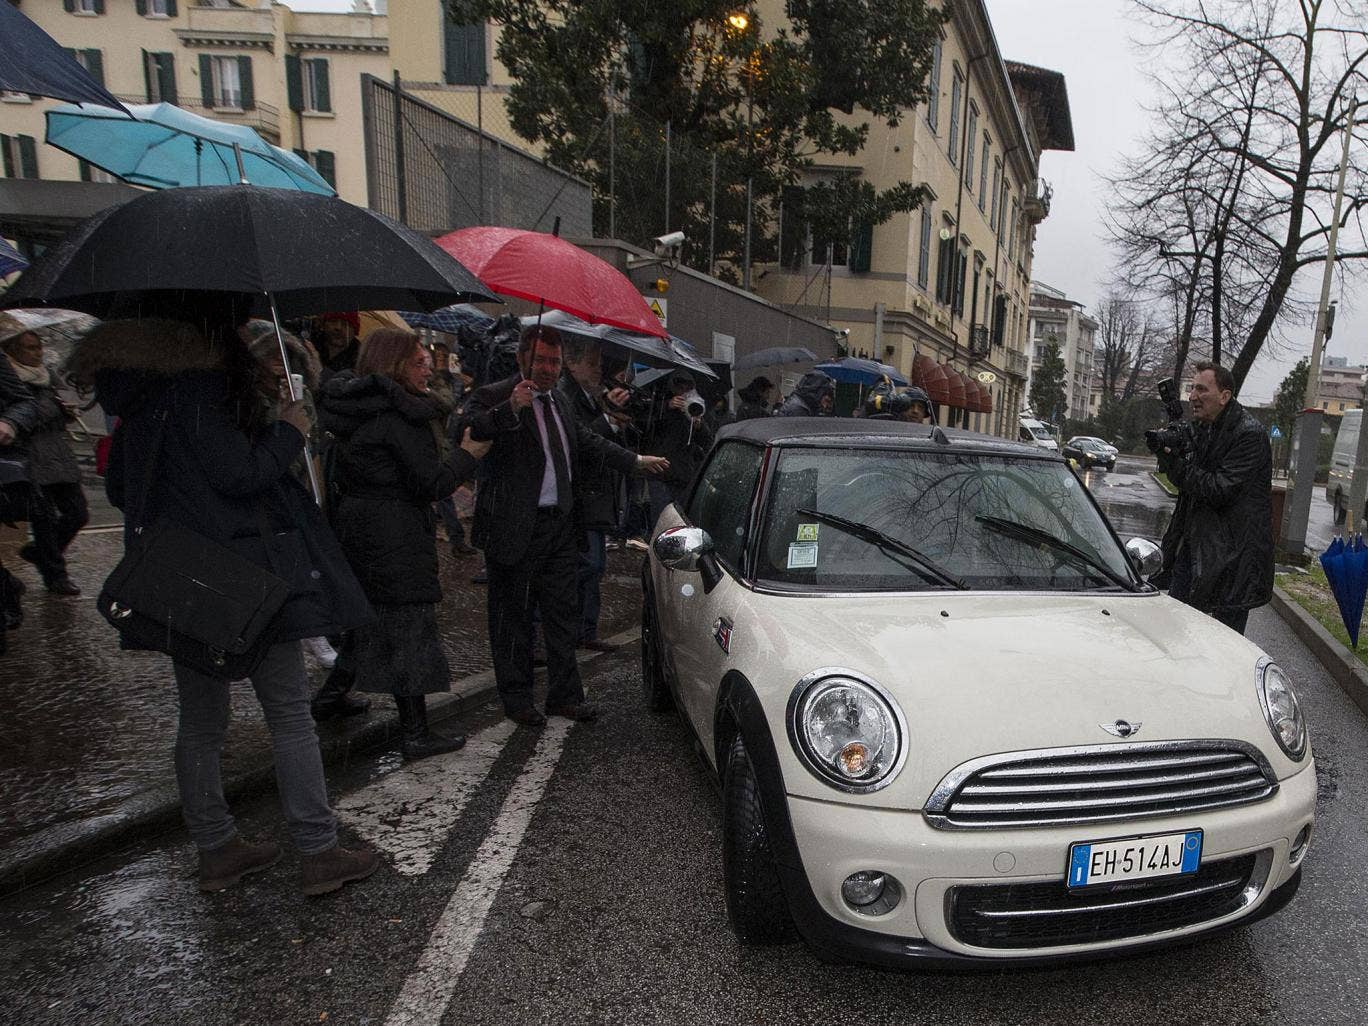 Raffaele Sollecito leaving the police station in the north-eastern town of Udine on Friday after surrendering his passport